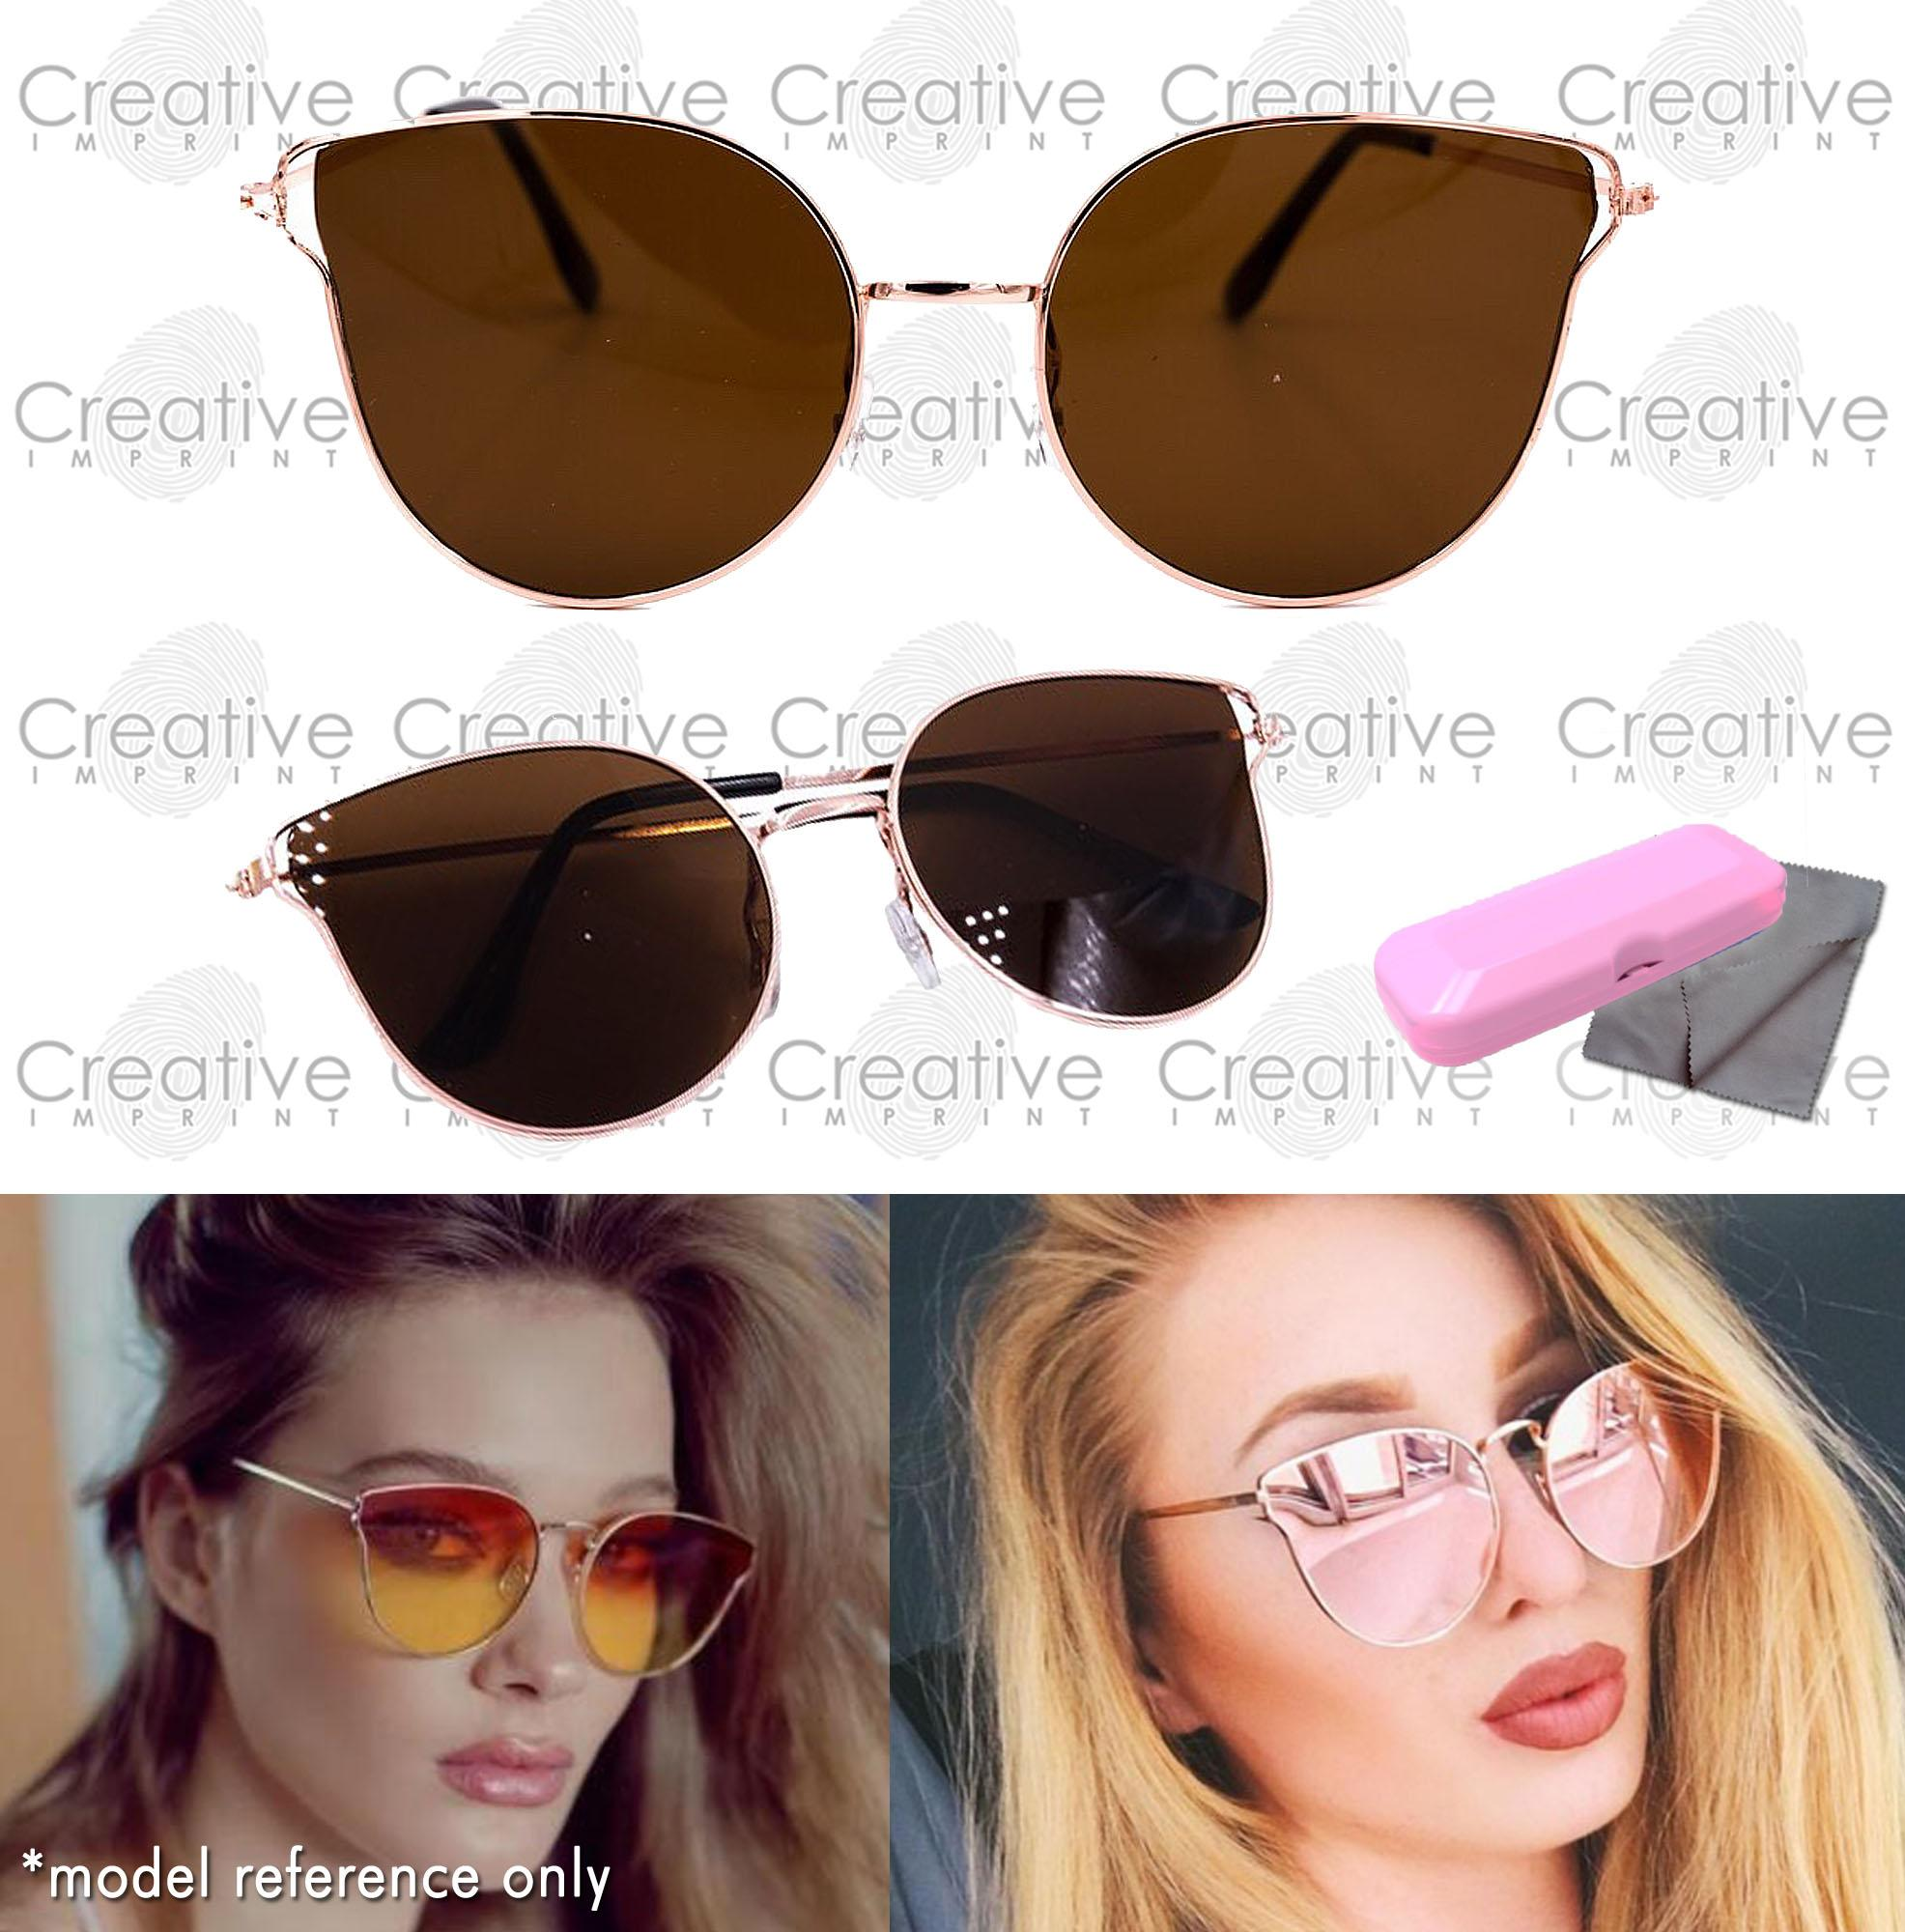 9ff3f458bd Creative Imprint Cat Eye Mirror Lens Coated Light Metal Frame High Fashion  Trendy Korean Sunglasses Shades